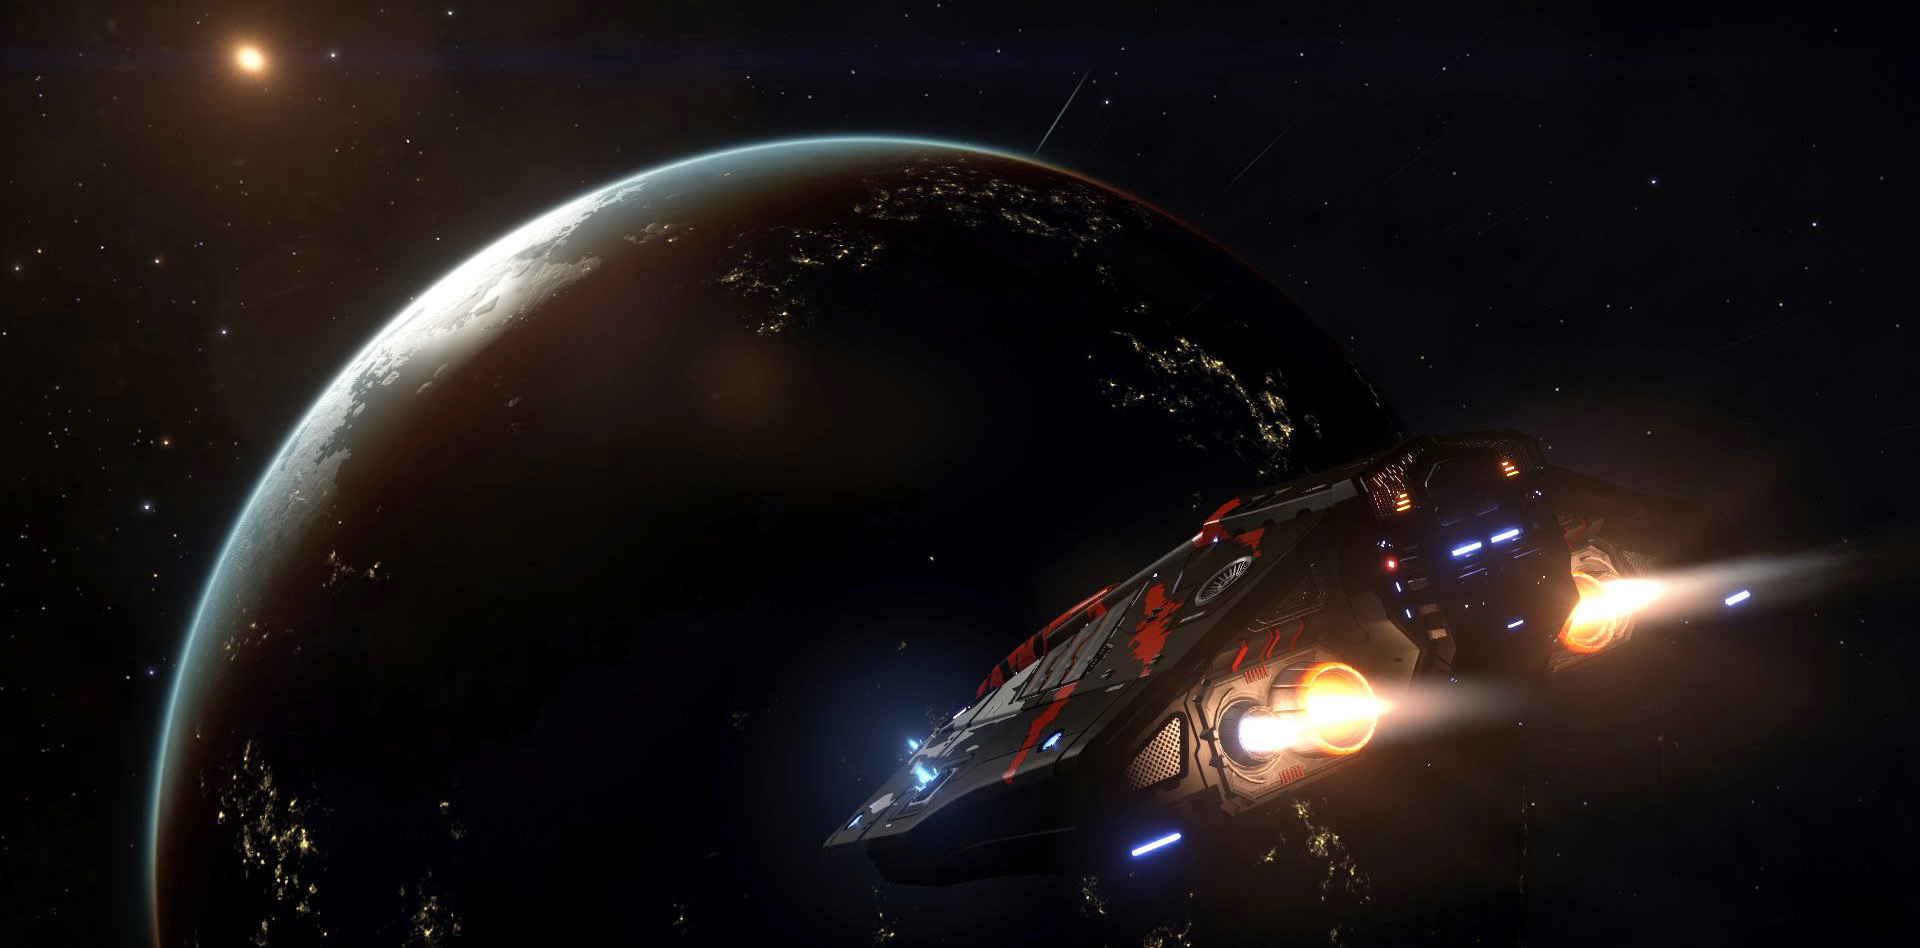 Win32 and DX10 Support May Be Dropped from Elite: Dangerous